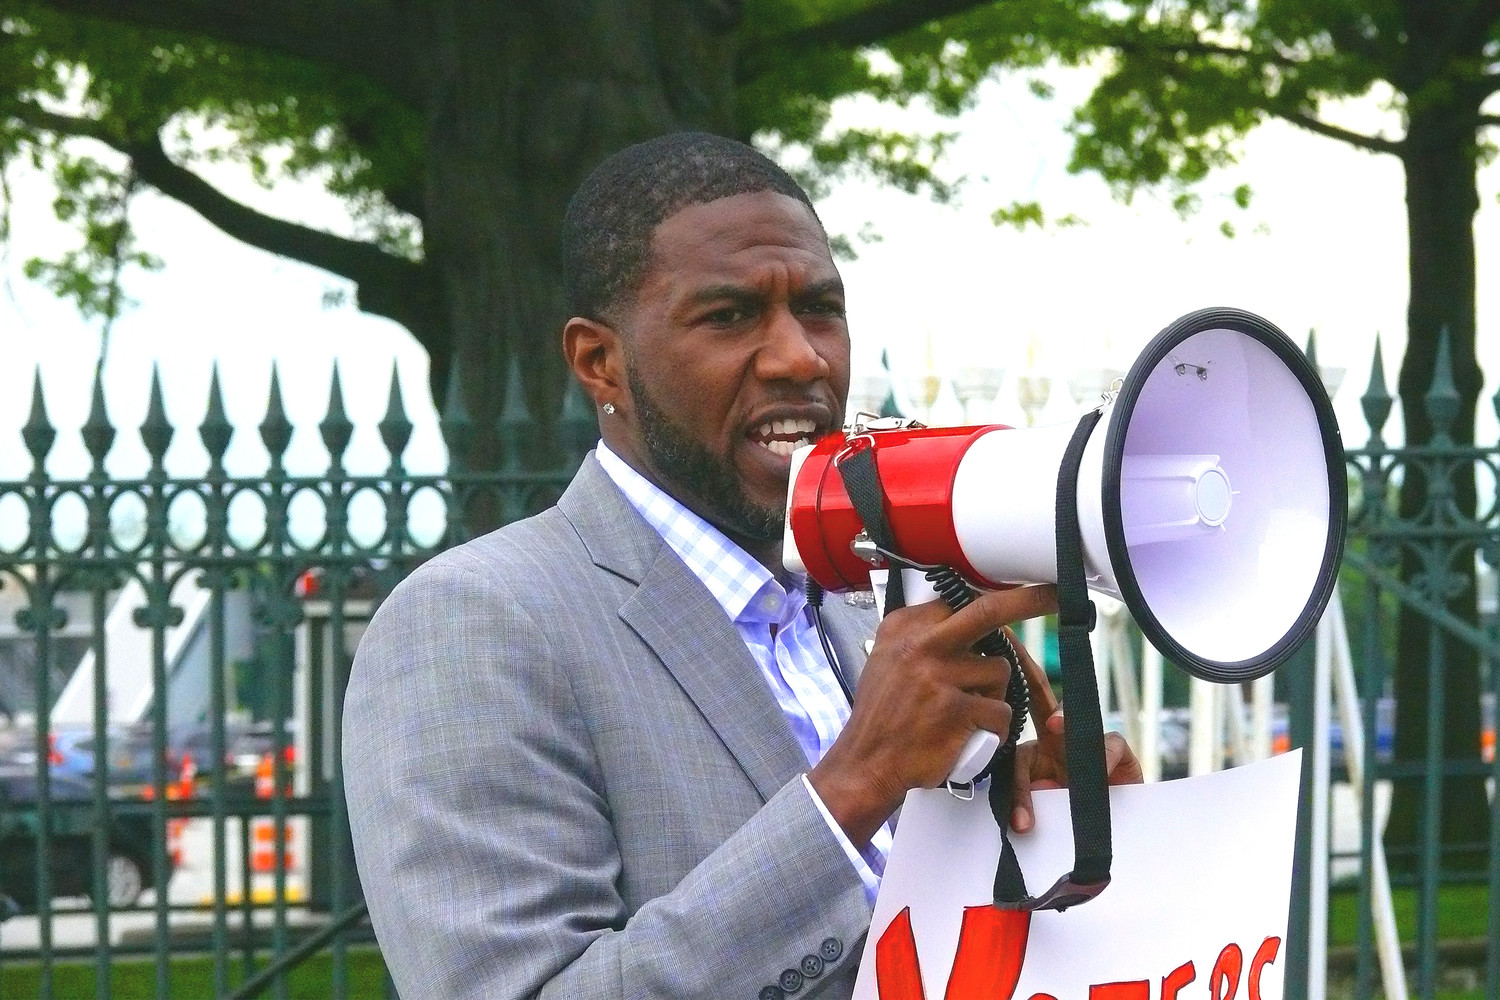 New York City Councilman Jumaane Williams, who is running for lieutenant governor, addressed assembled demonstrators.